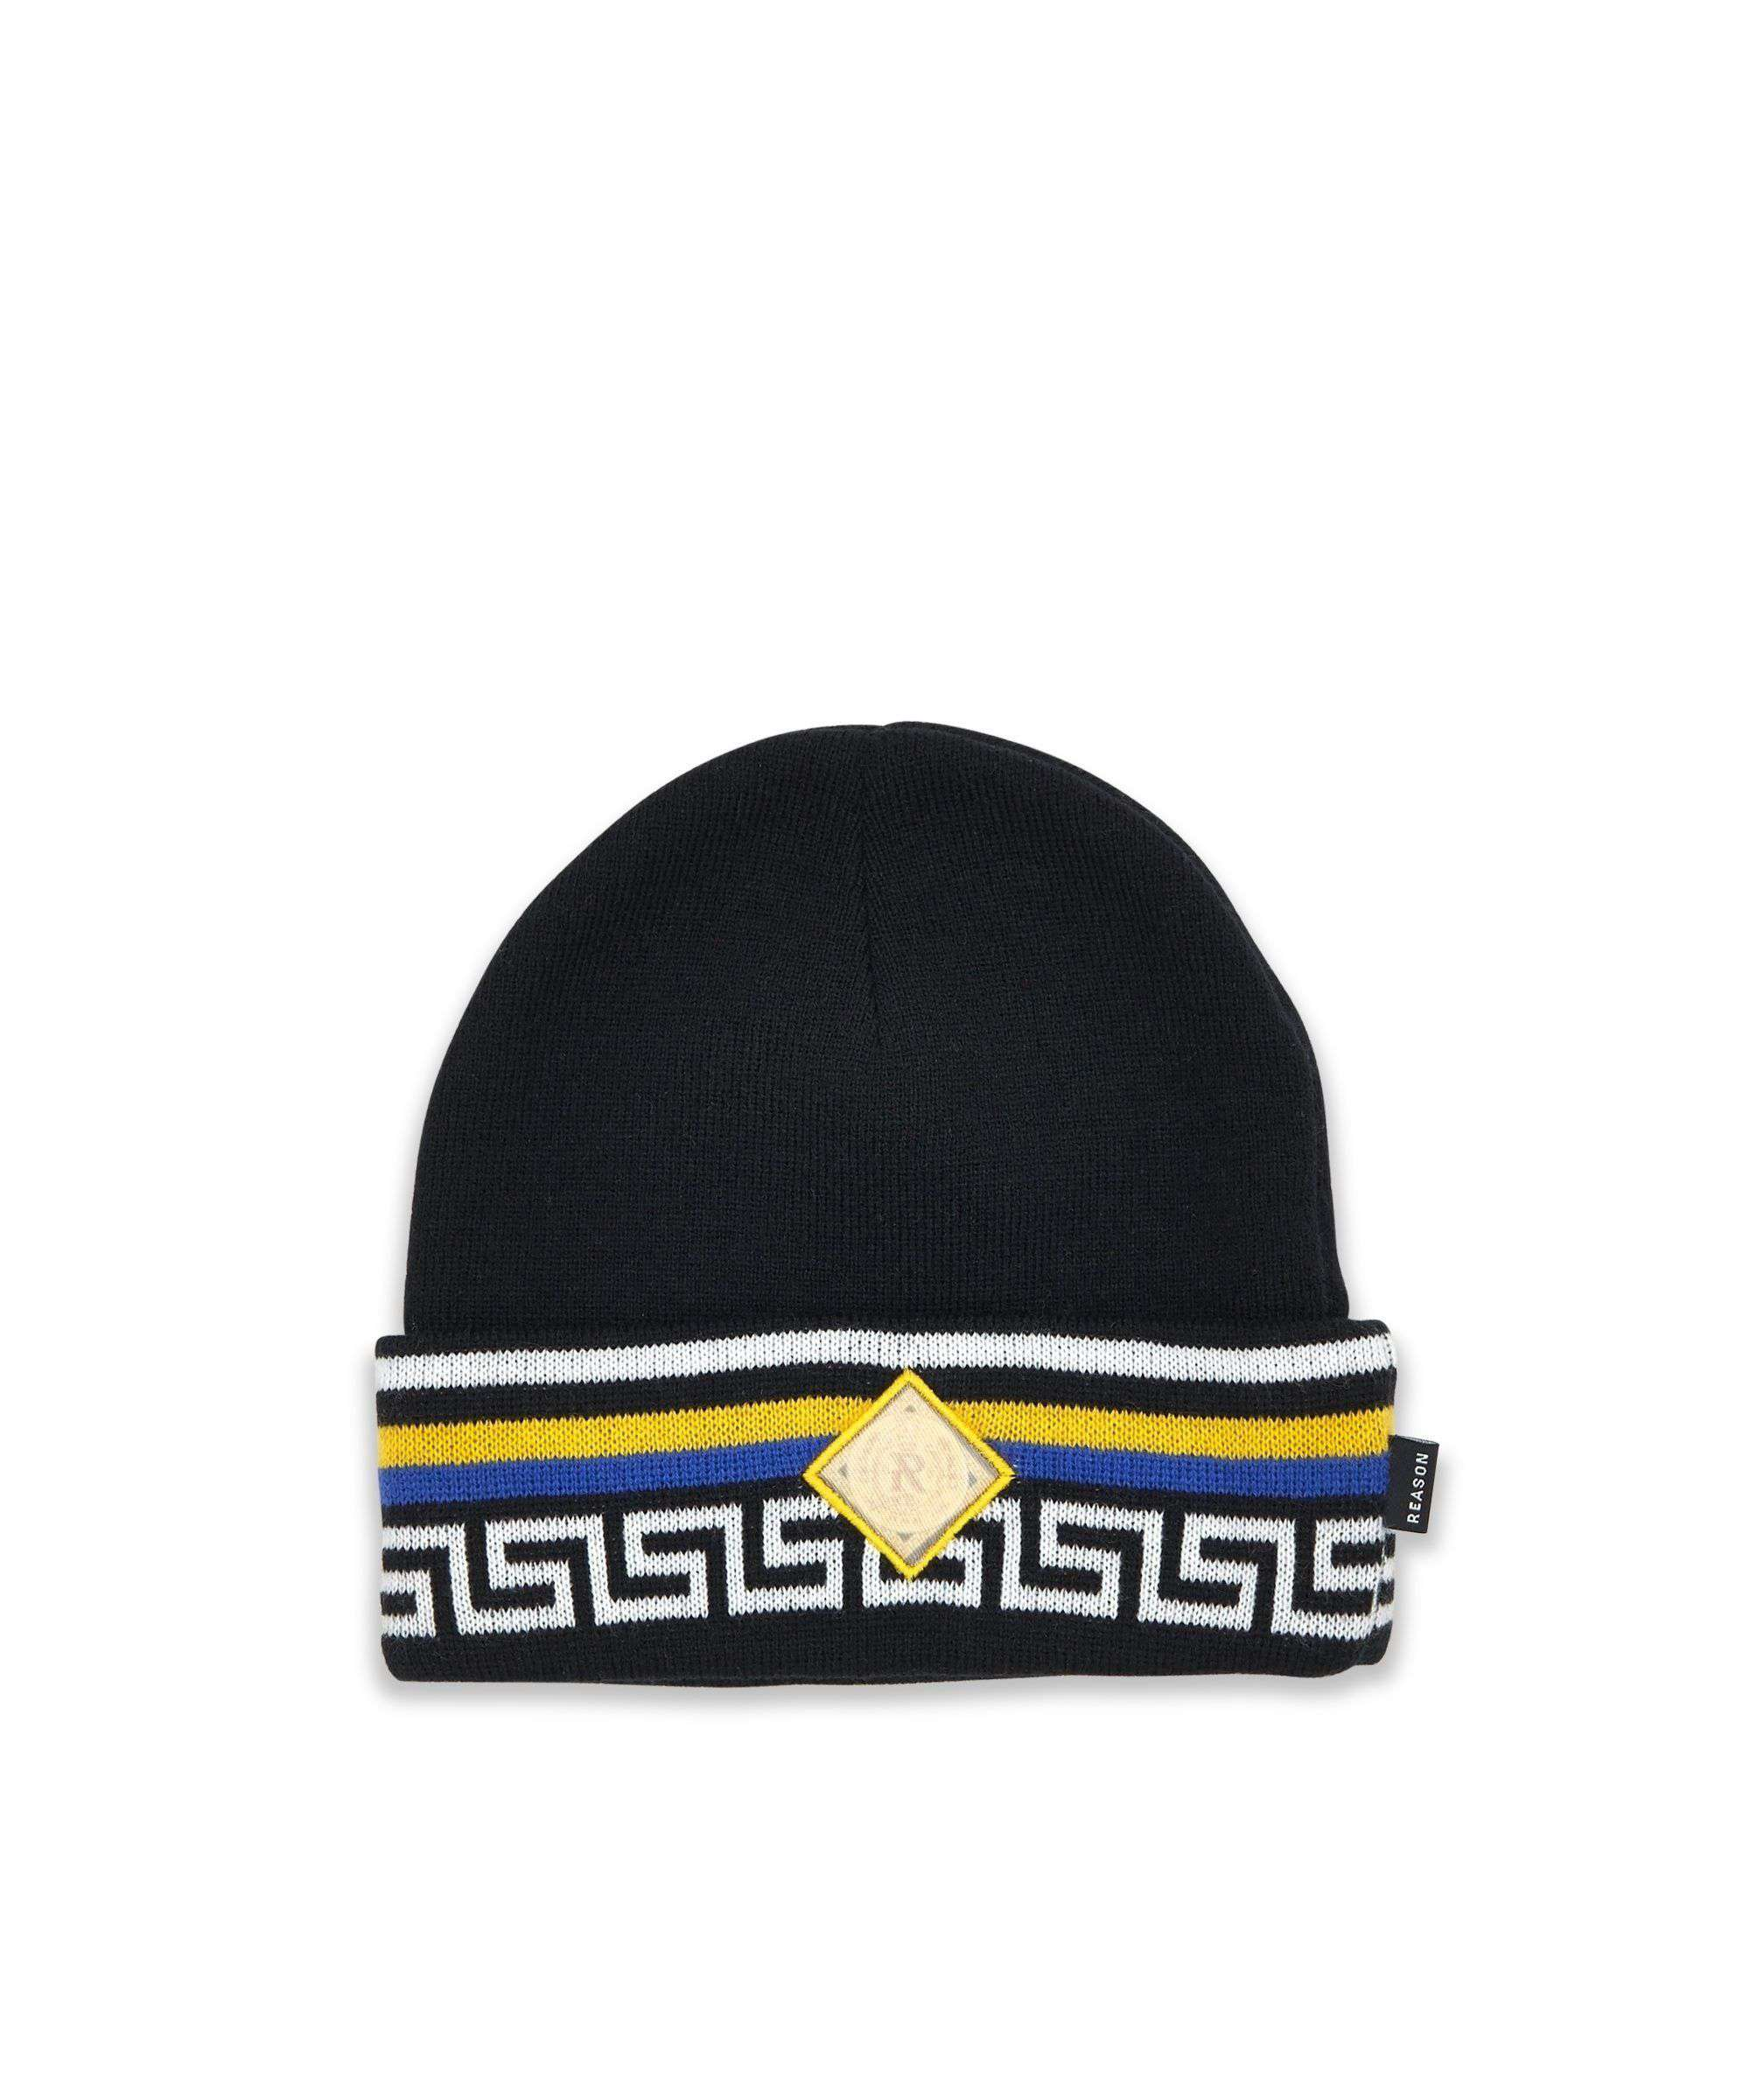 EMPIRE BEANIE Reason Clothing